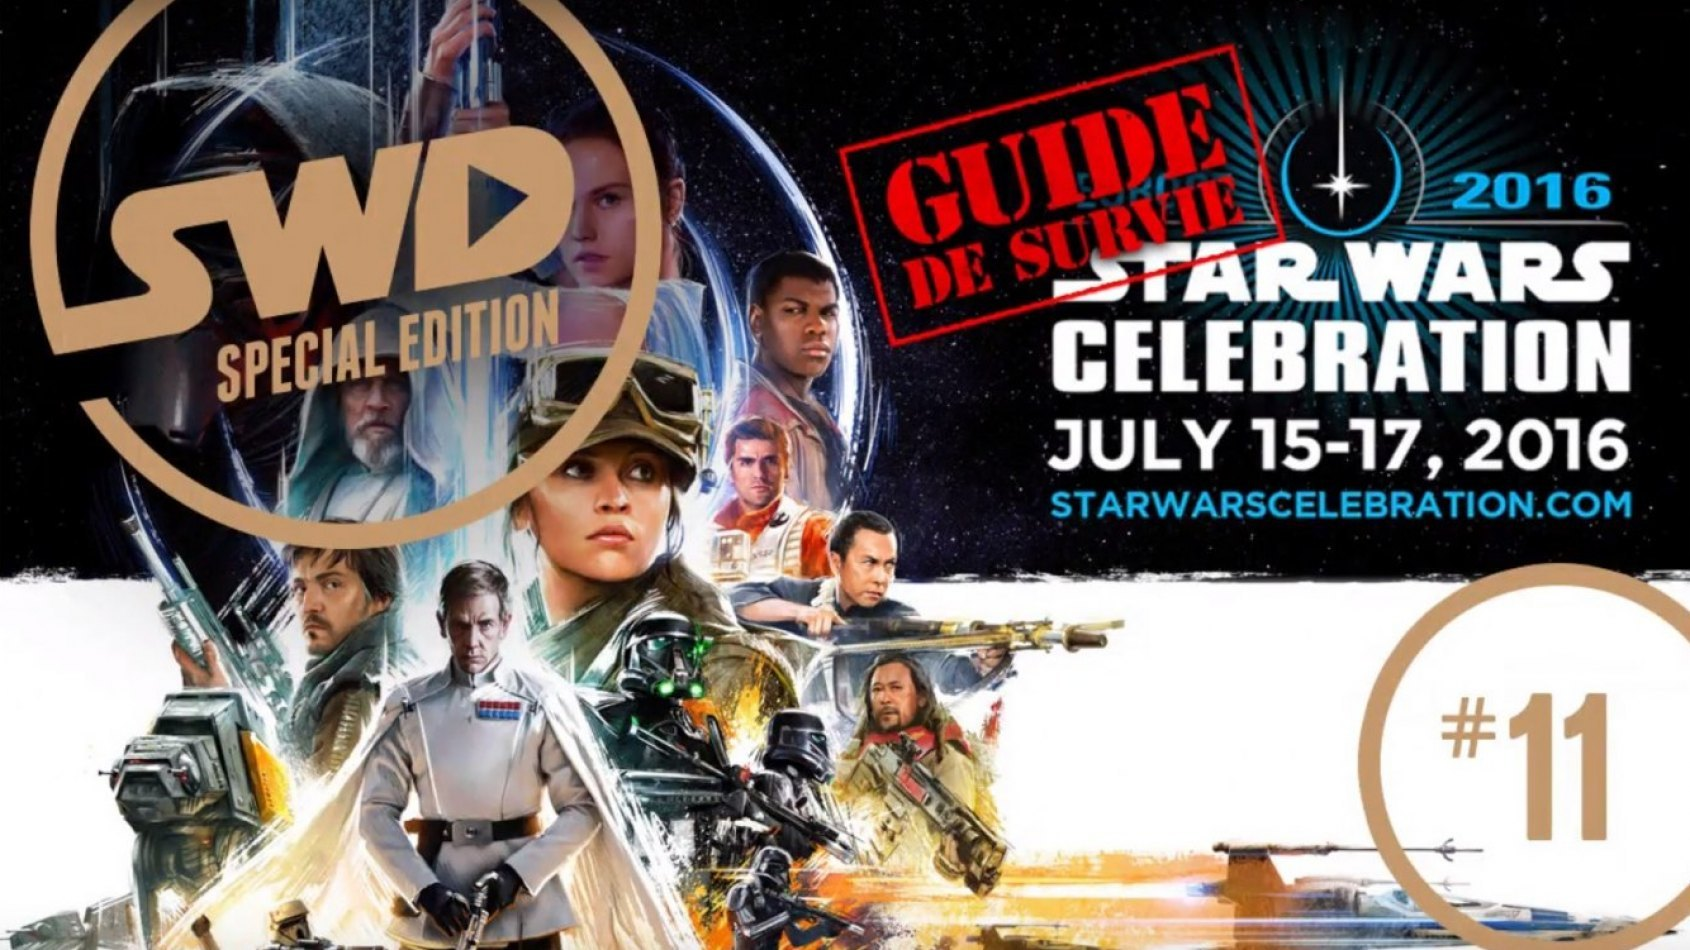 Star Wars Celebration Londres : Le Guide de Survie !